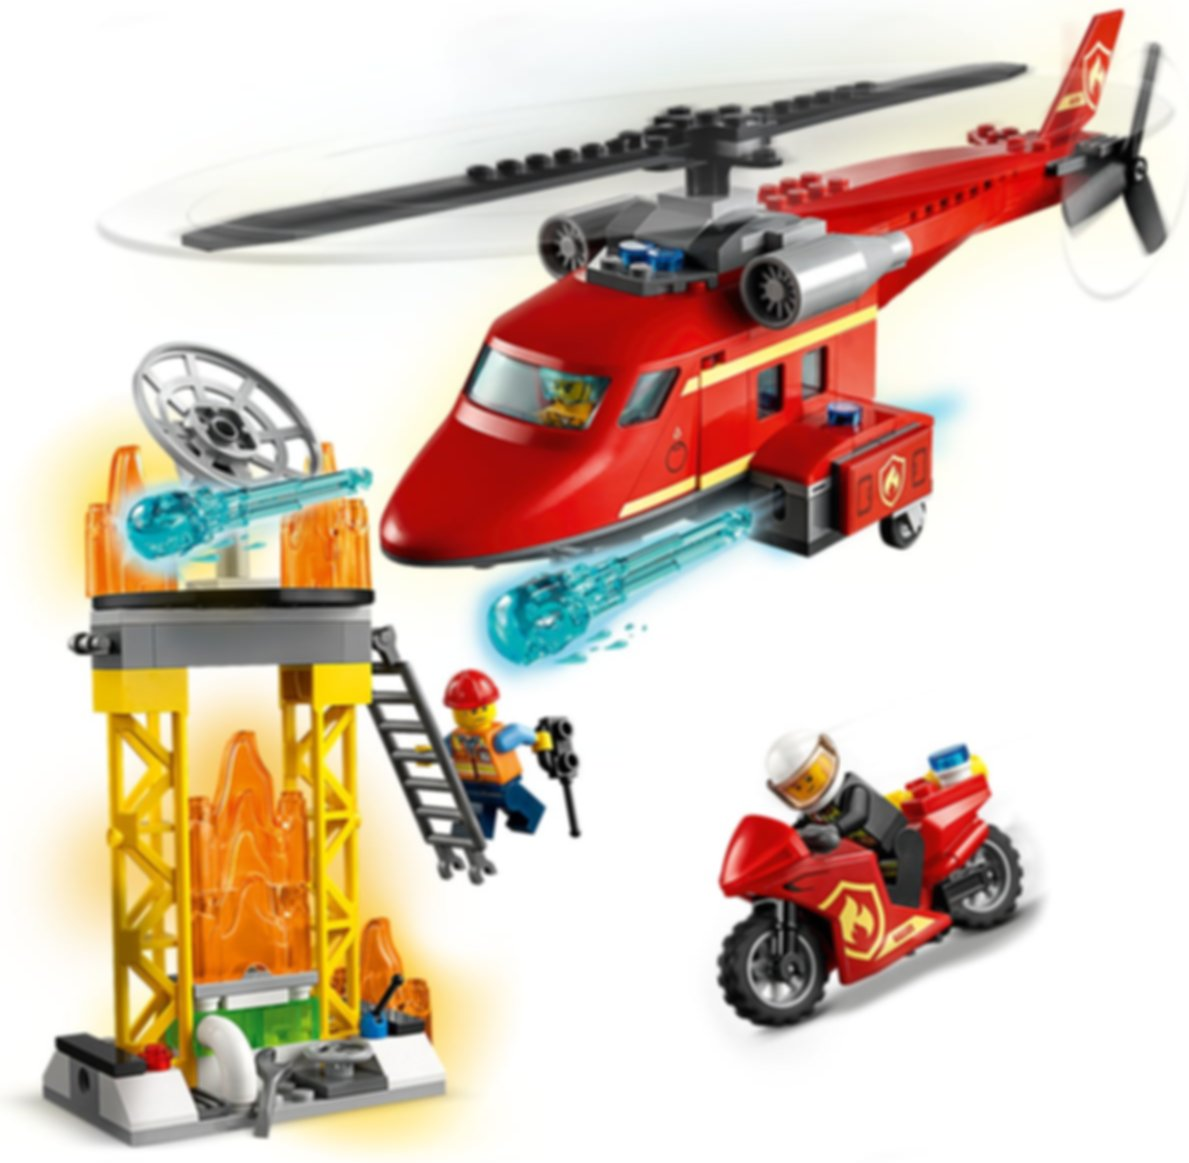 LEGO® City Fire Rescue Helicopter gameplay